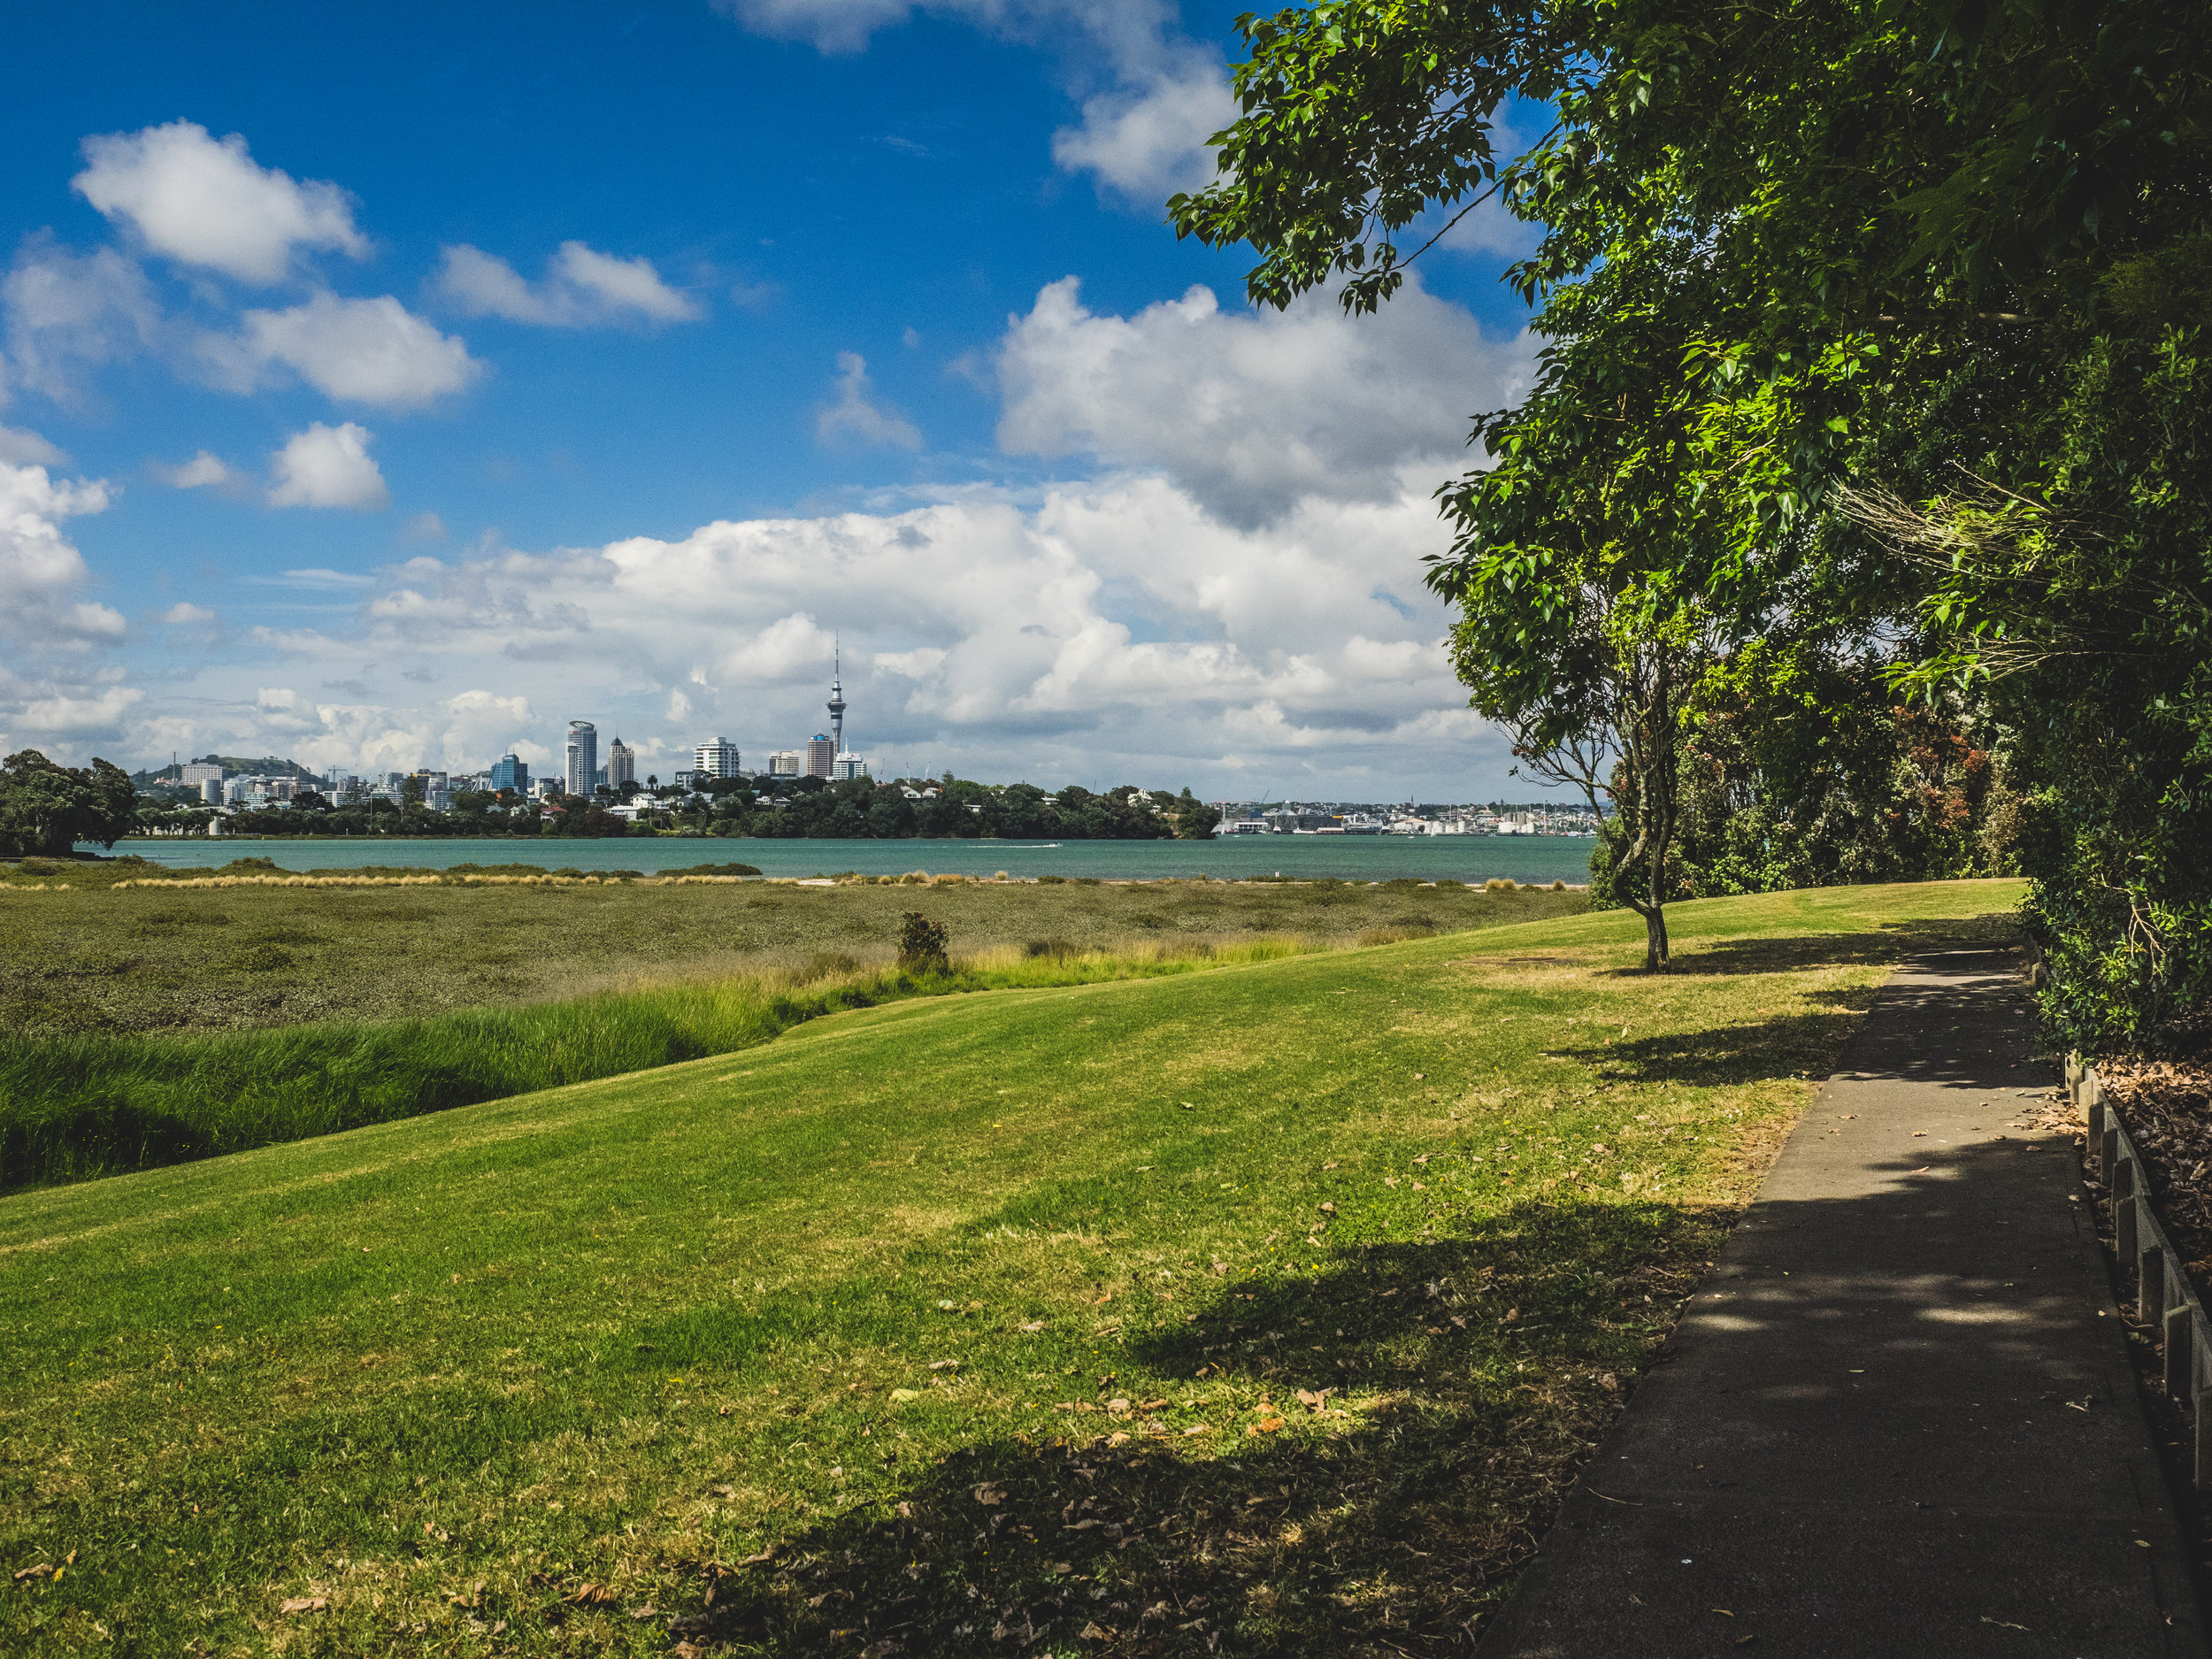 Downtown Auckland from the walking path between Bayswater and Devonport